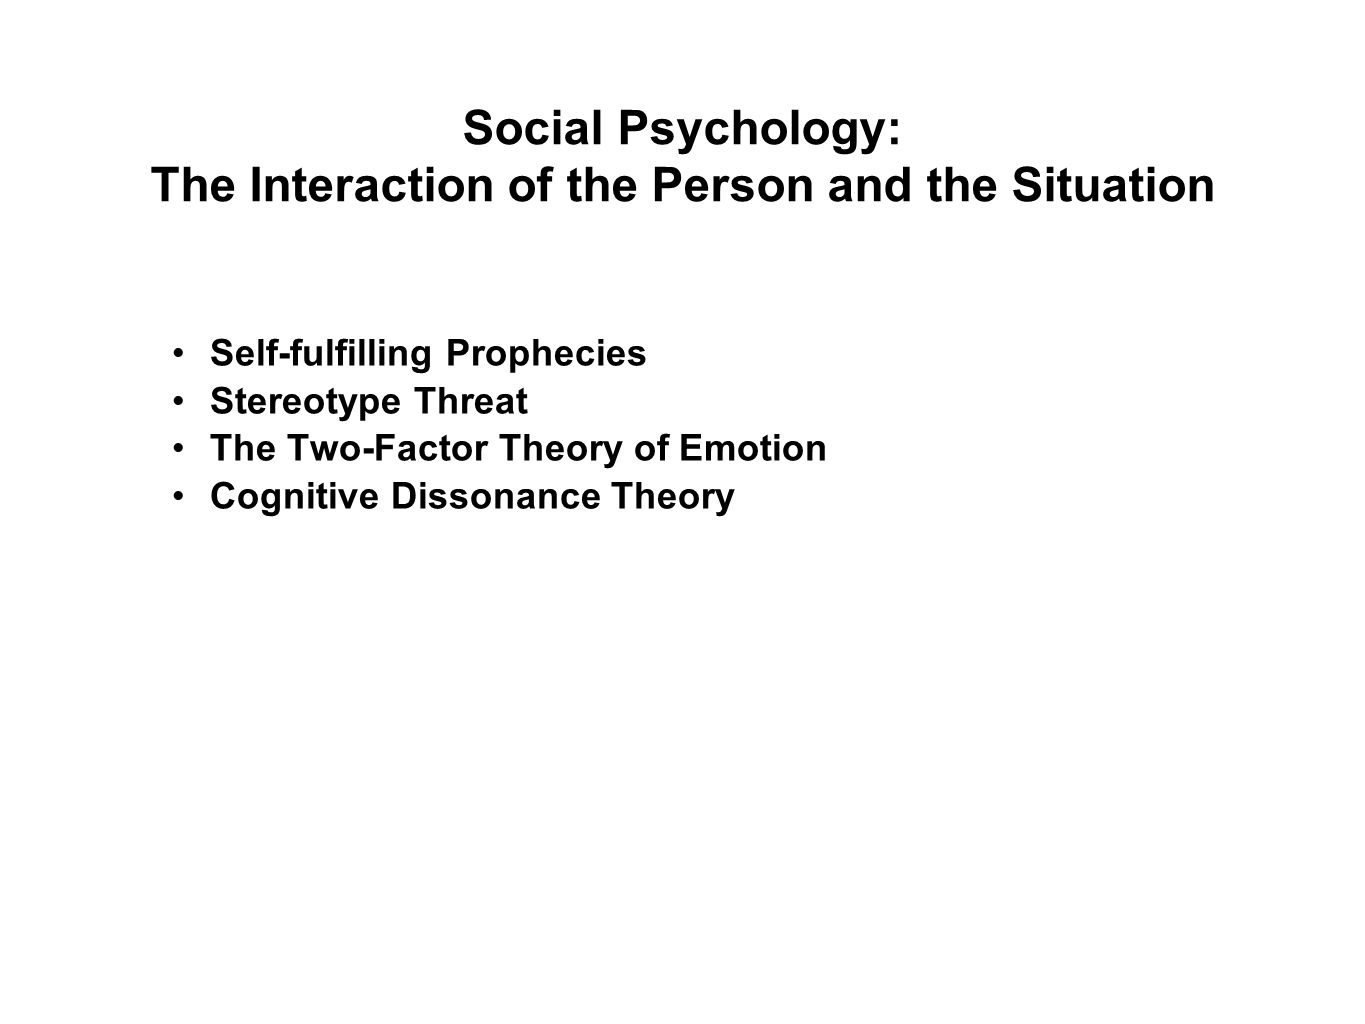 Social Psychology: The Interaction of the Person and the Situation